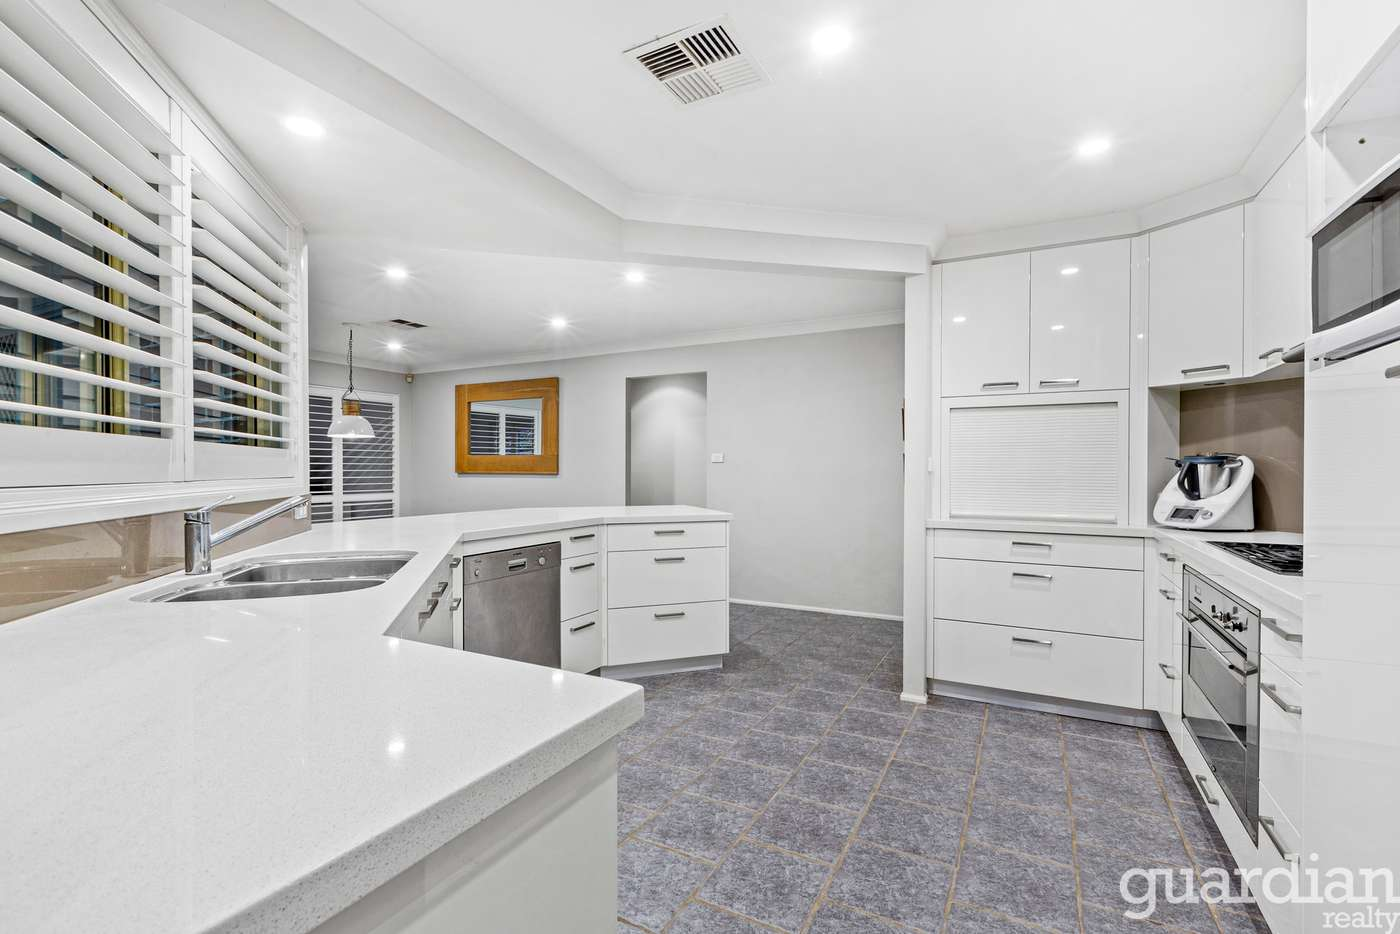 Fifth view of Homely house listing, 4 Cigolini Place, Kellyville NSW 2155